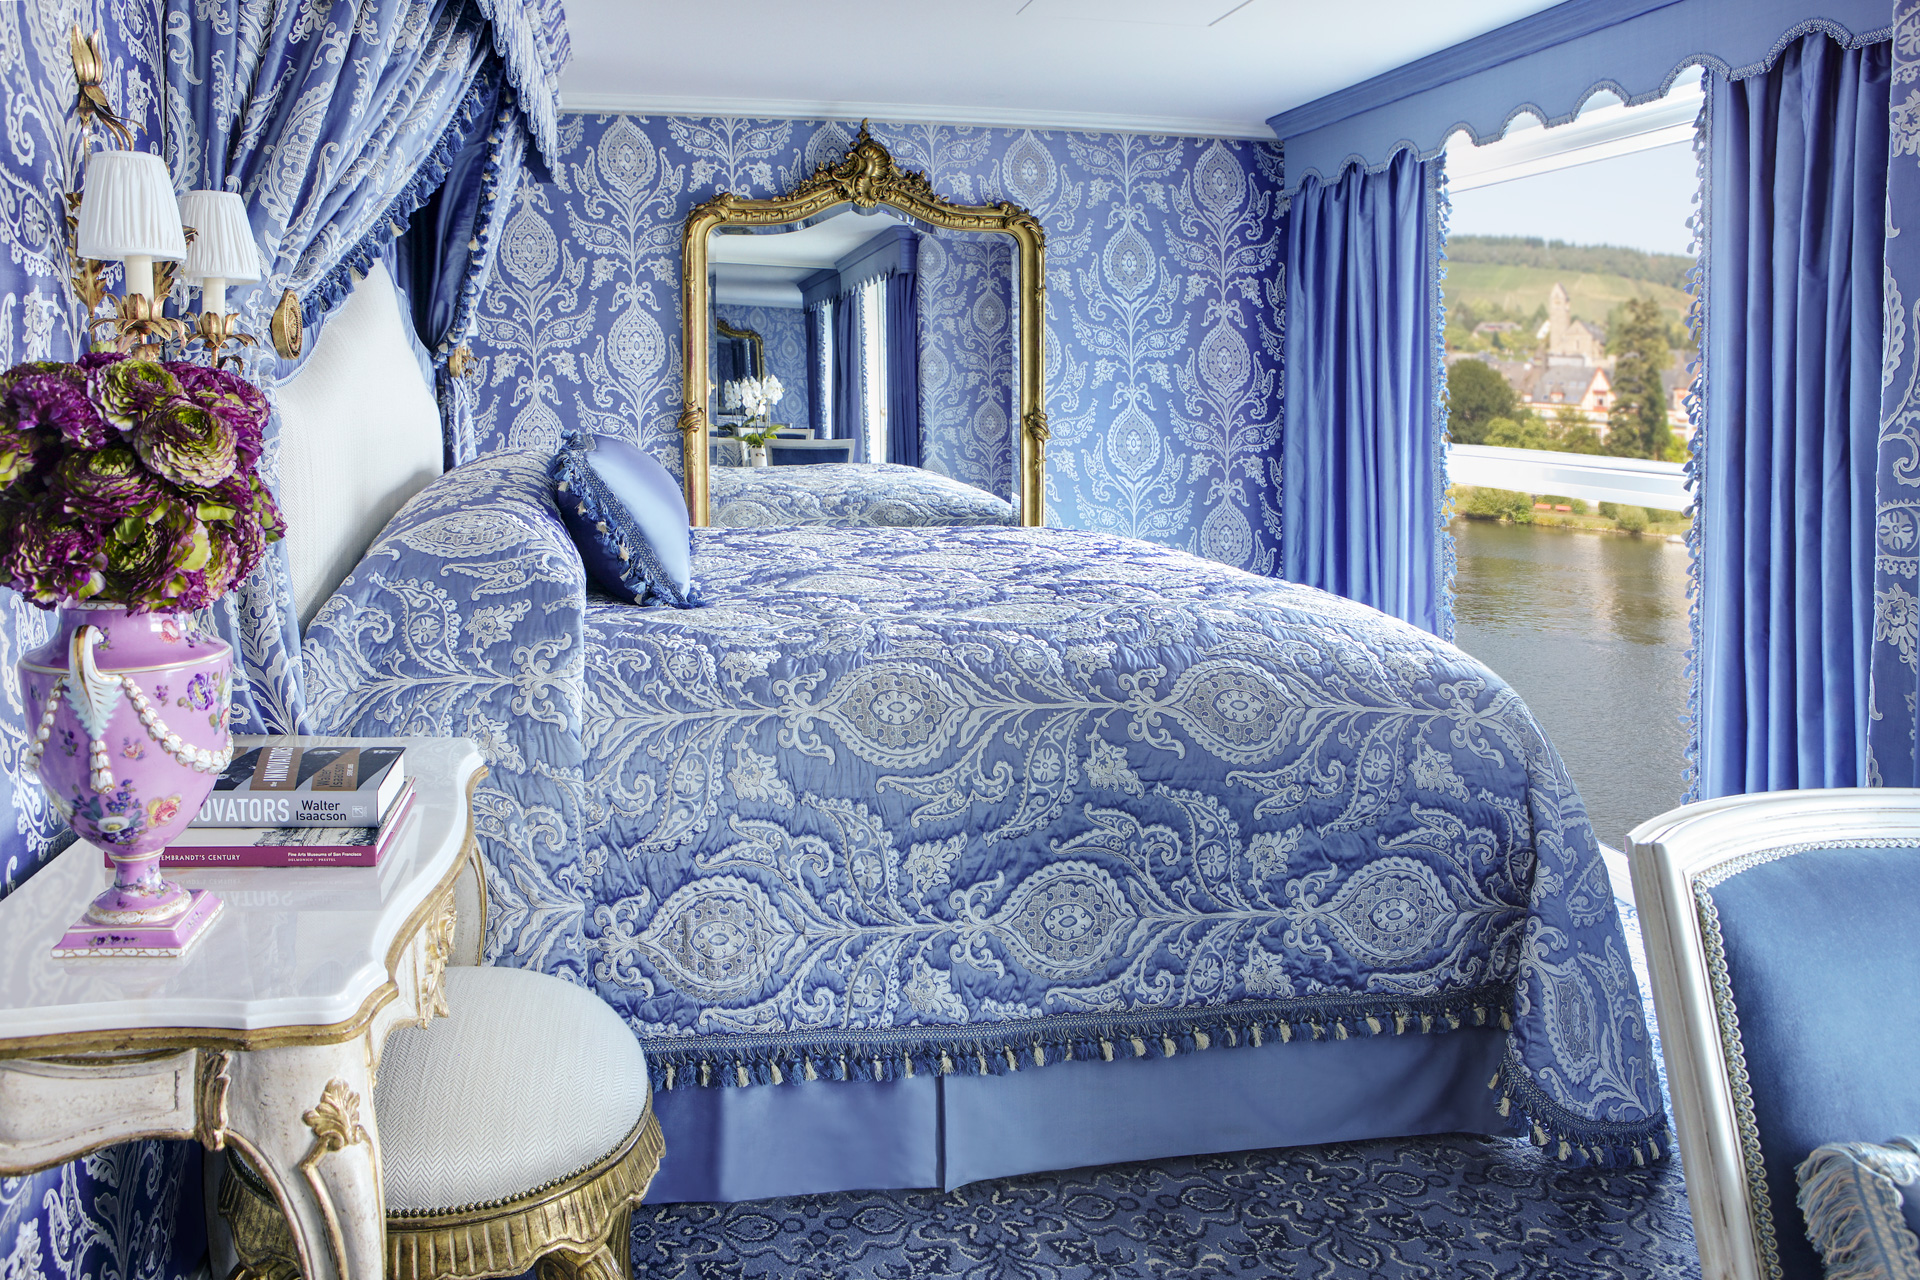 UNIWORLD Boutique River Cruises SS Maria Theresa Accommodation Suite 409.jpg